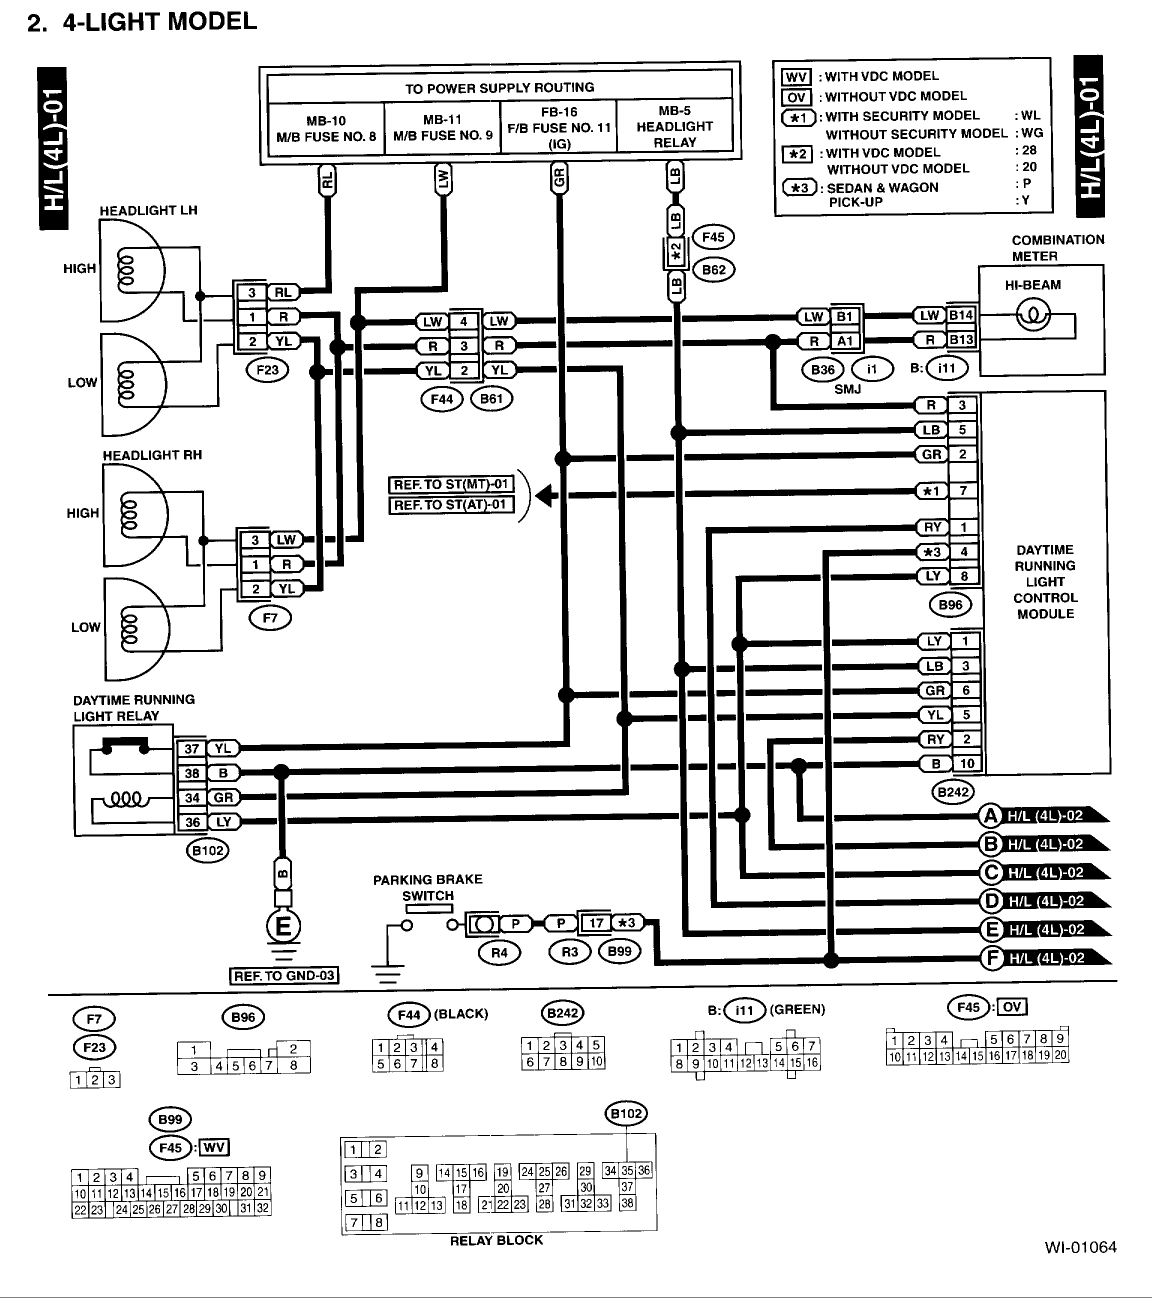 hight resolution of 1999 subaru legacy wiring diagram l wiring diagram mega1999 subaru radio wiring diagram wiring diagram article